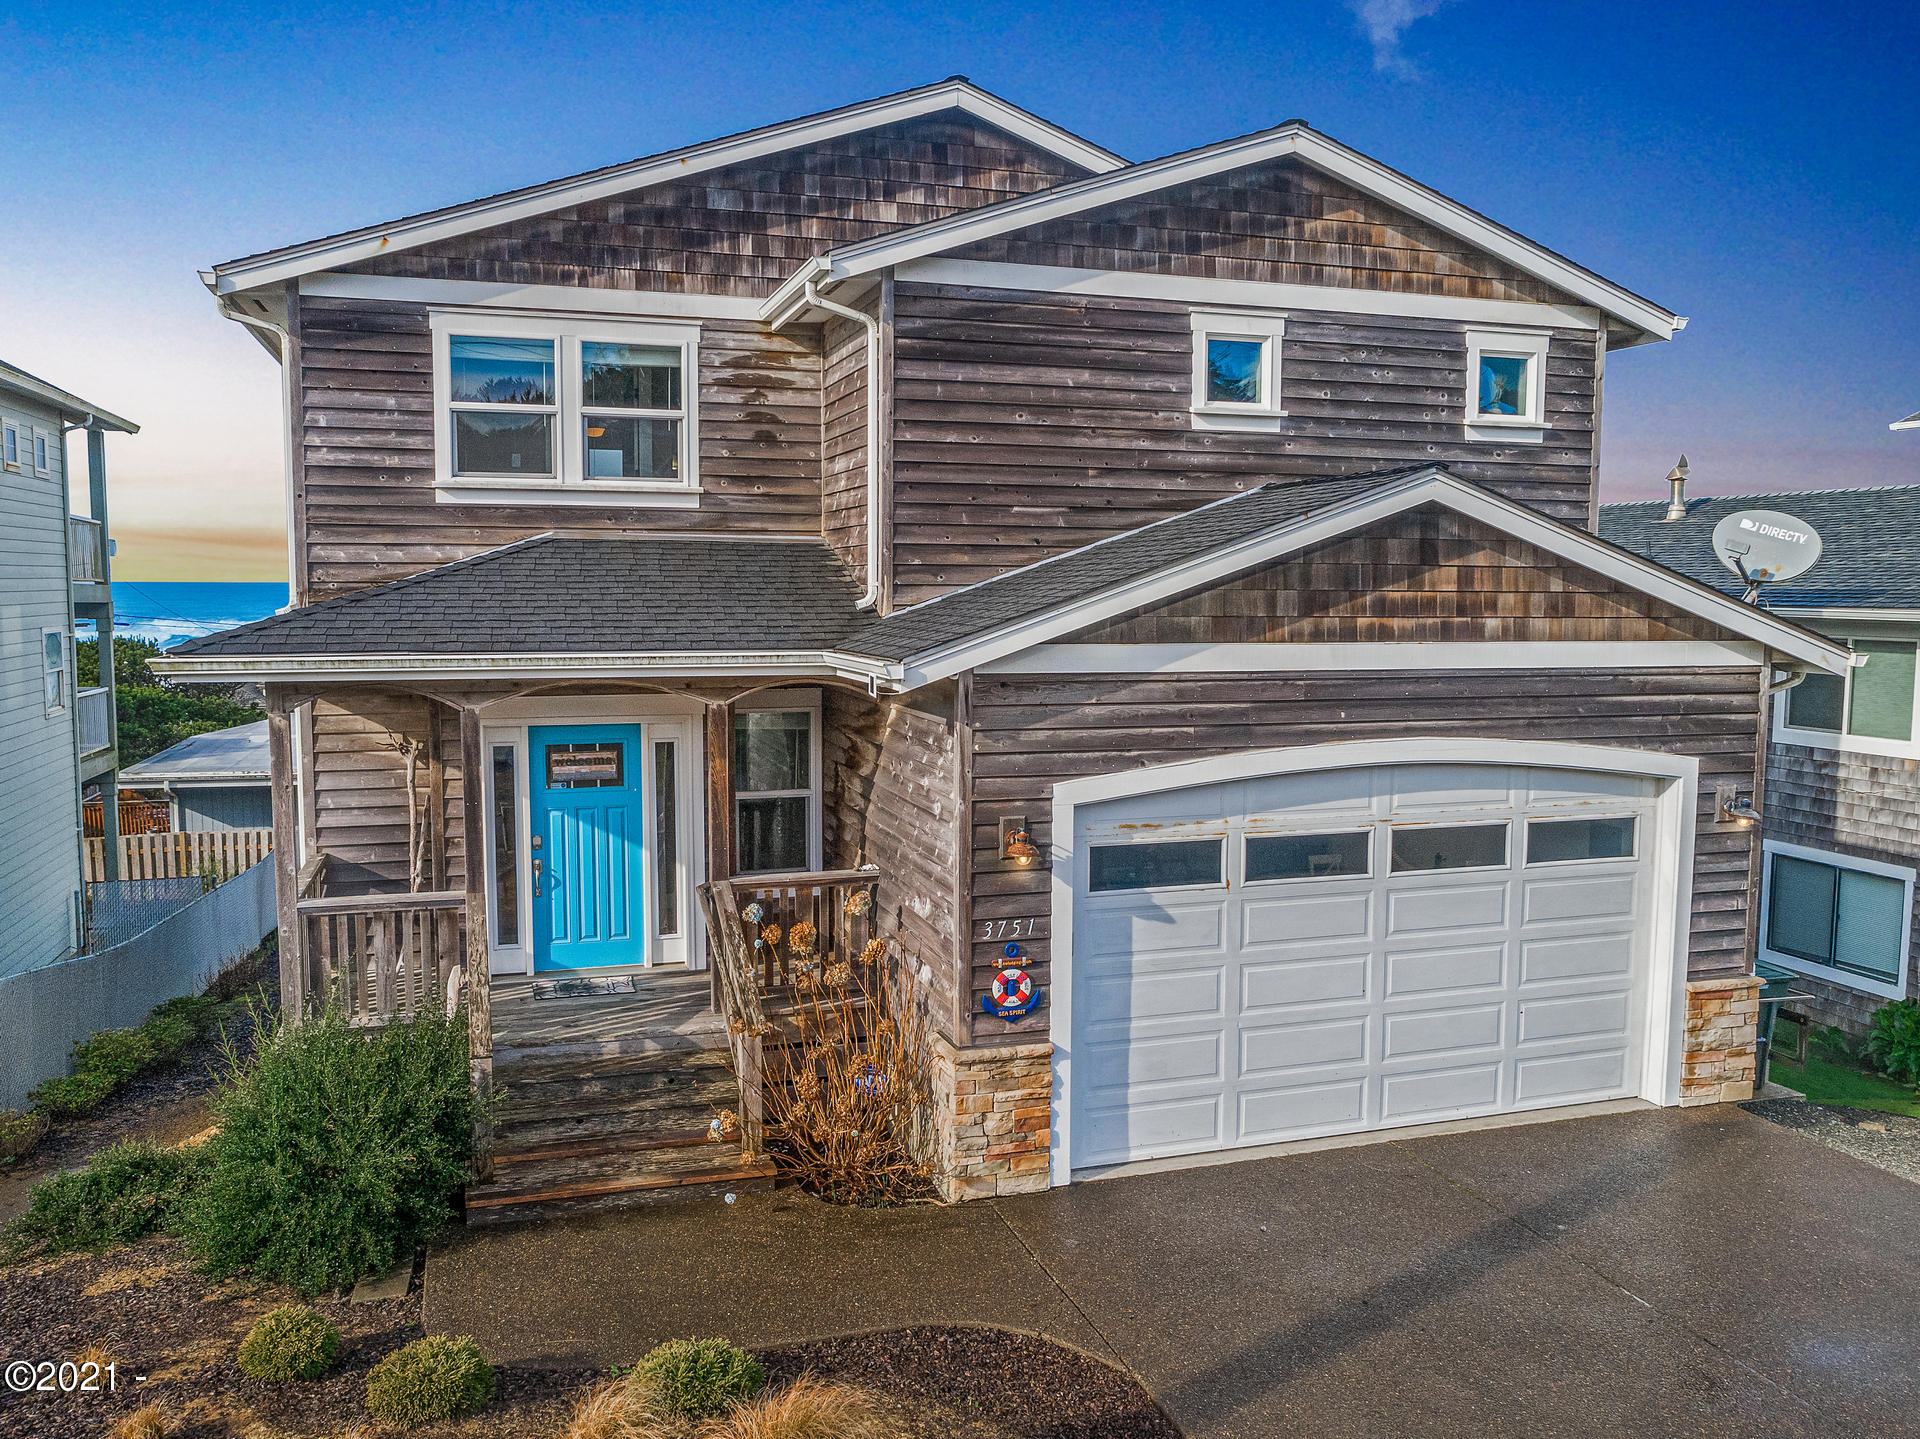 3751 NW Keel Ave, Lincoln City, OR 97367 - 205 MLS 3751 NW Keel Ave LC